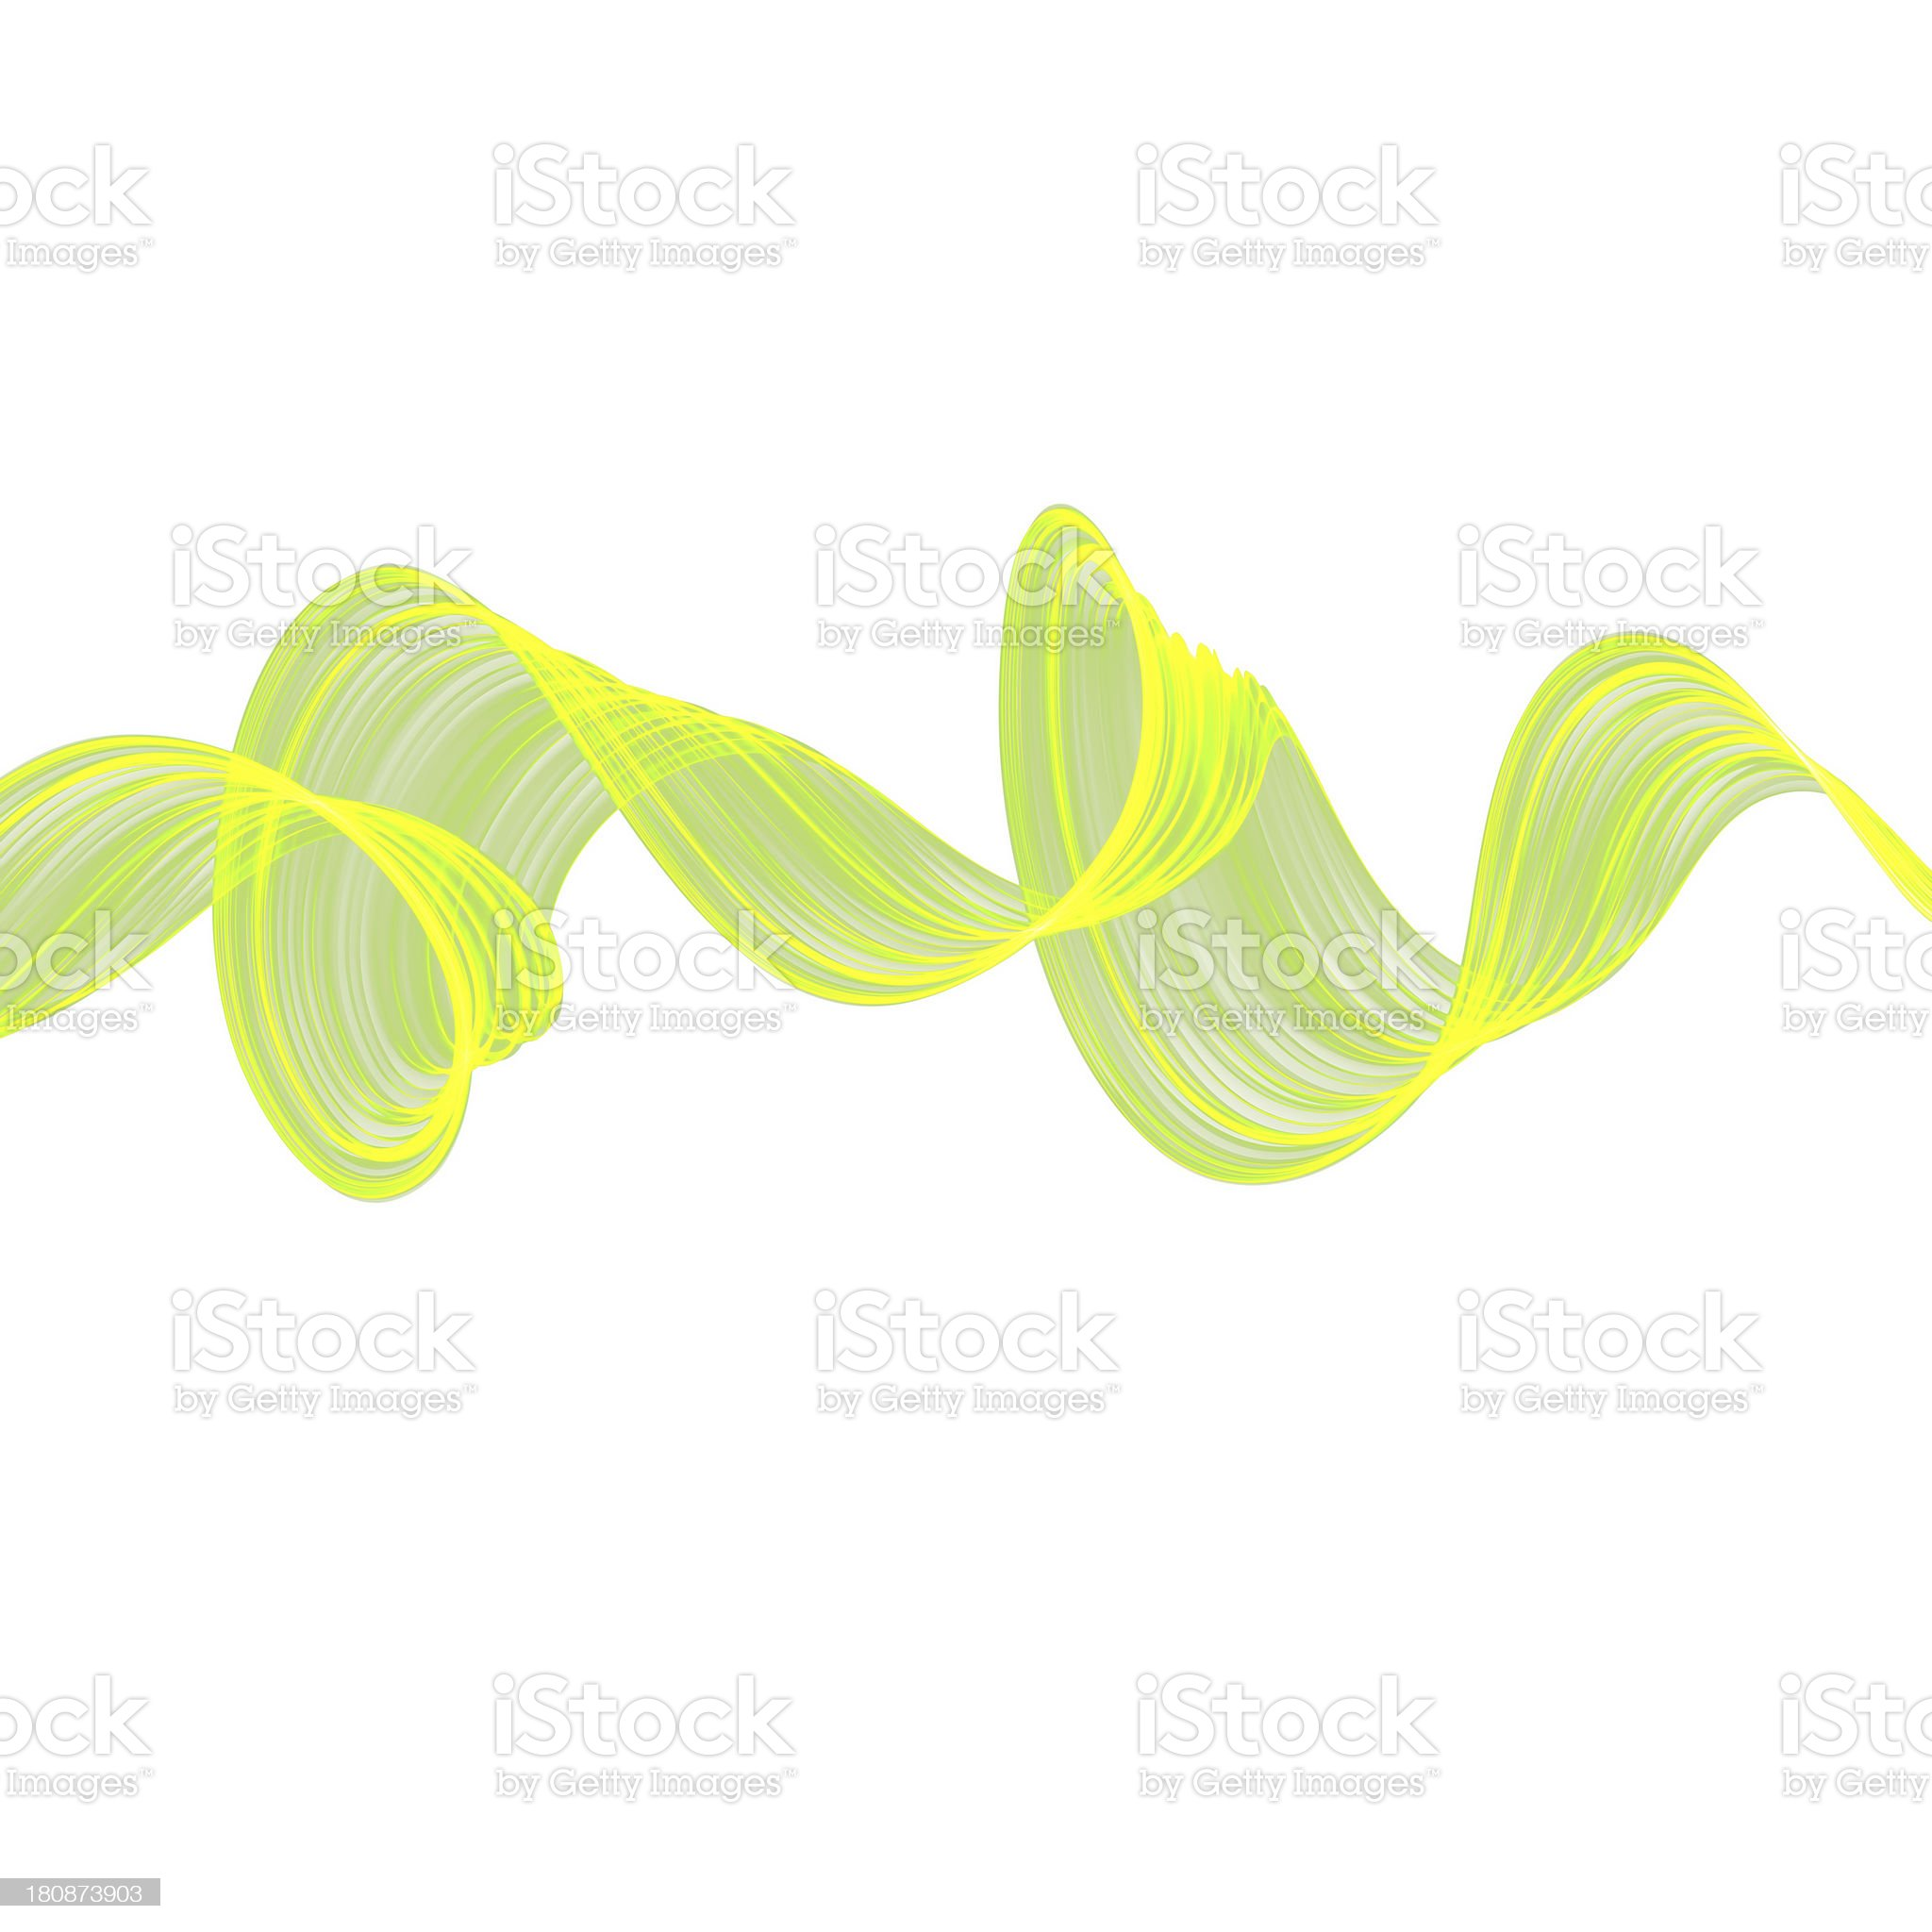 abstract twisted waves royalty-free stock photo